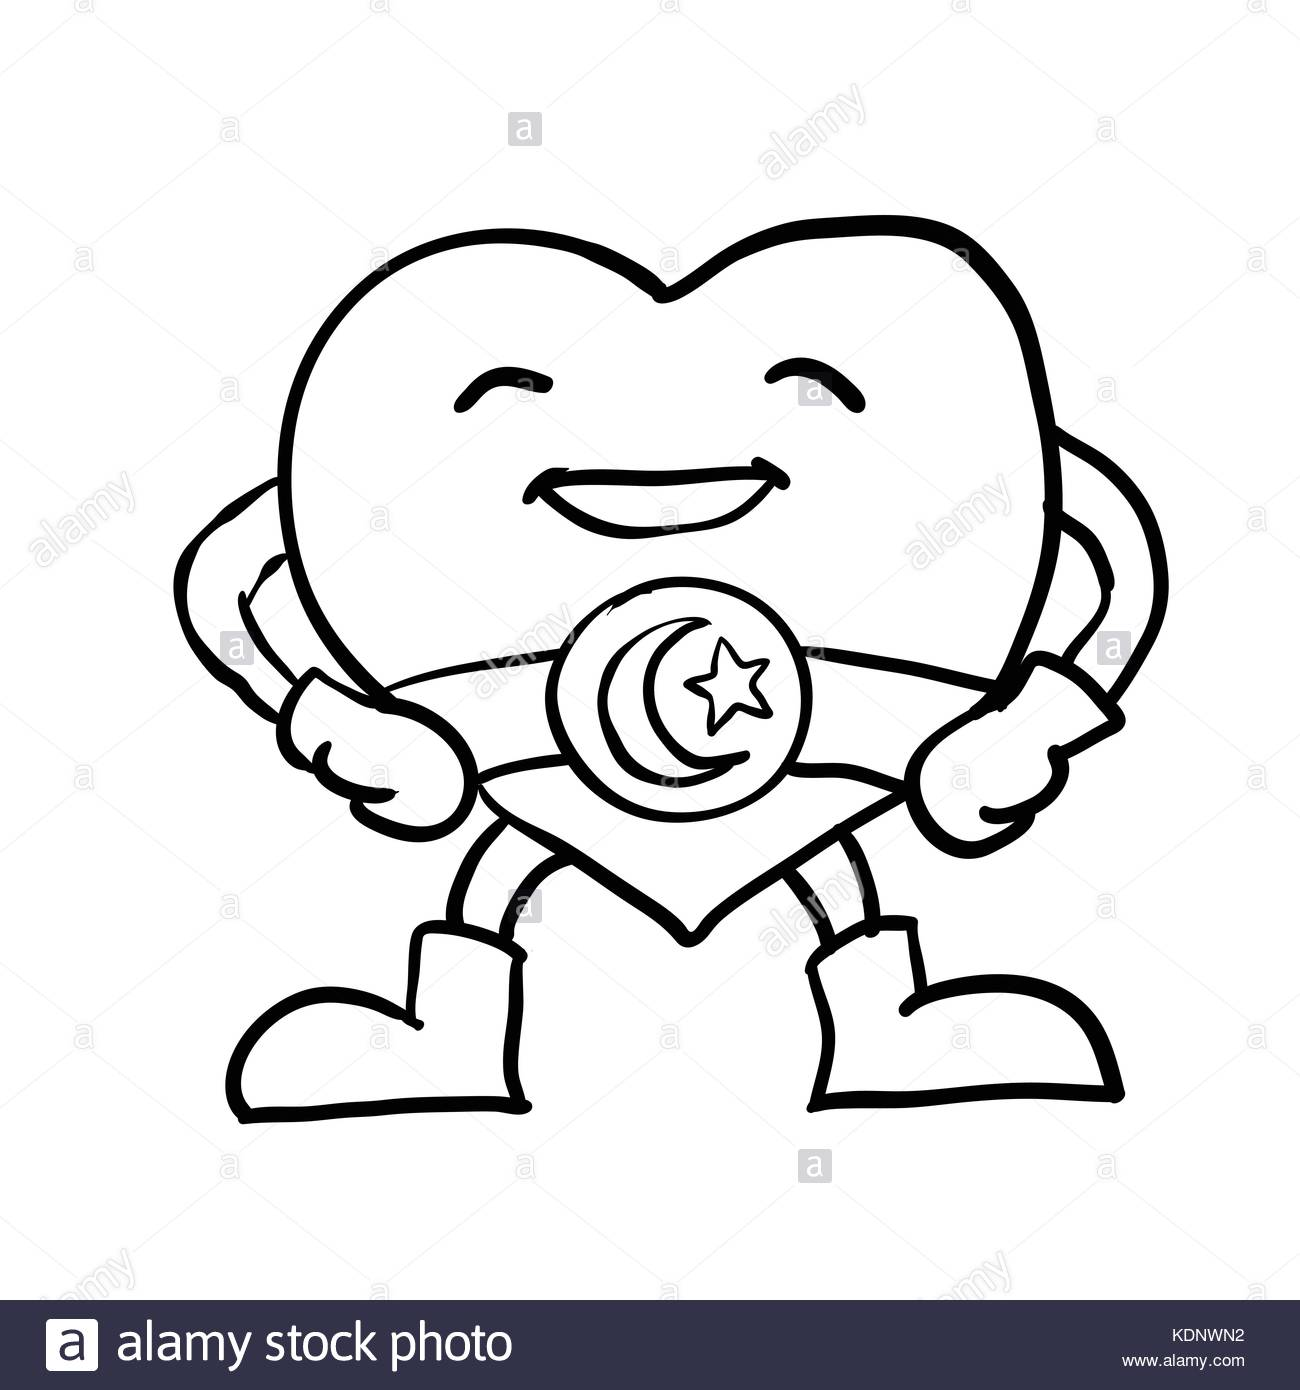 1300x1390 Hand Drawing Of Cartoon Smiling Heart With Crescent Star On Belt